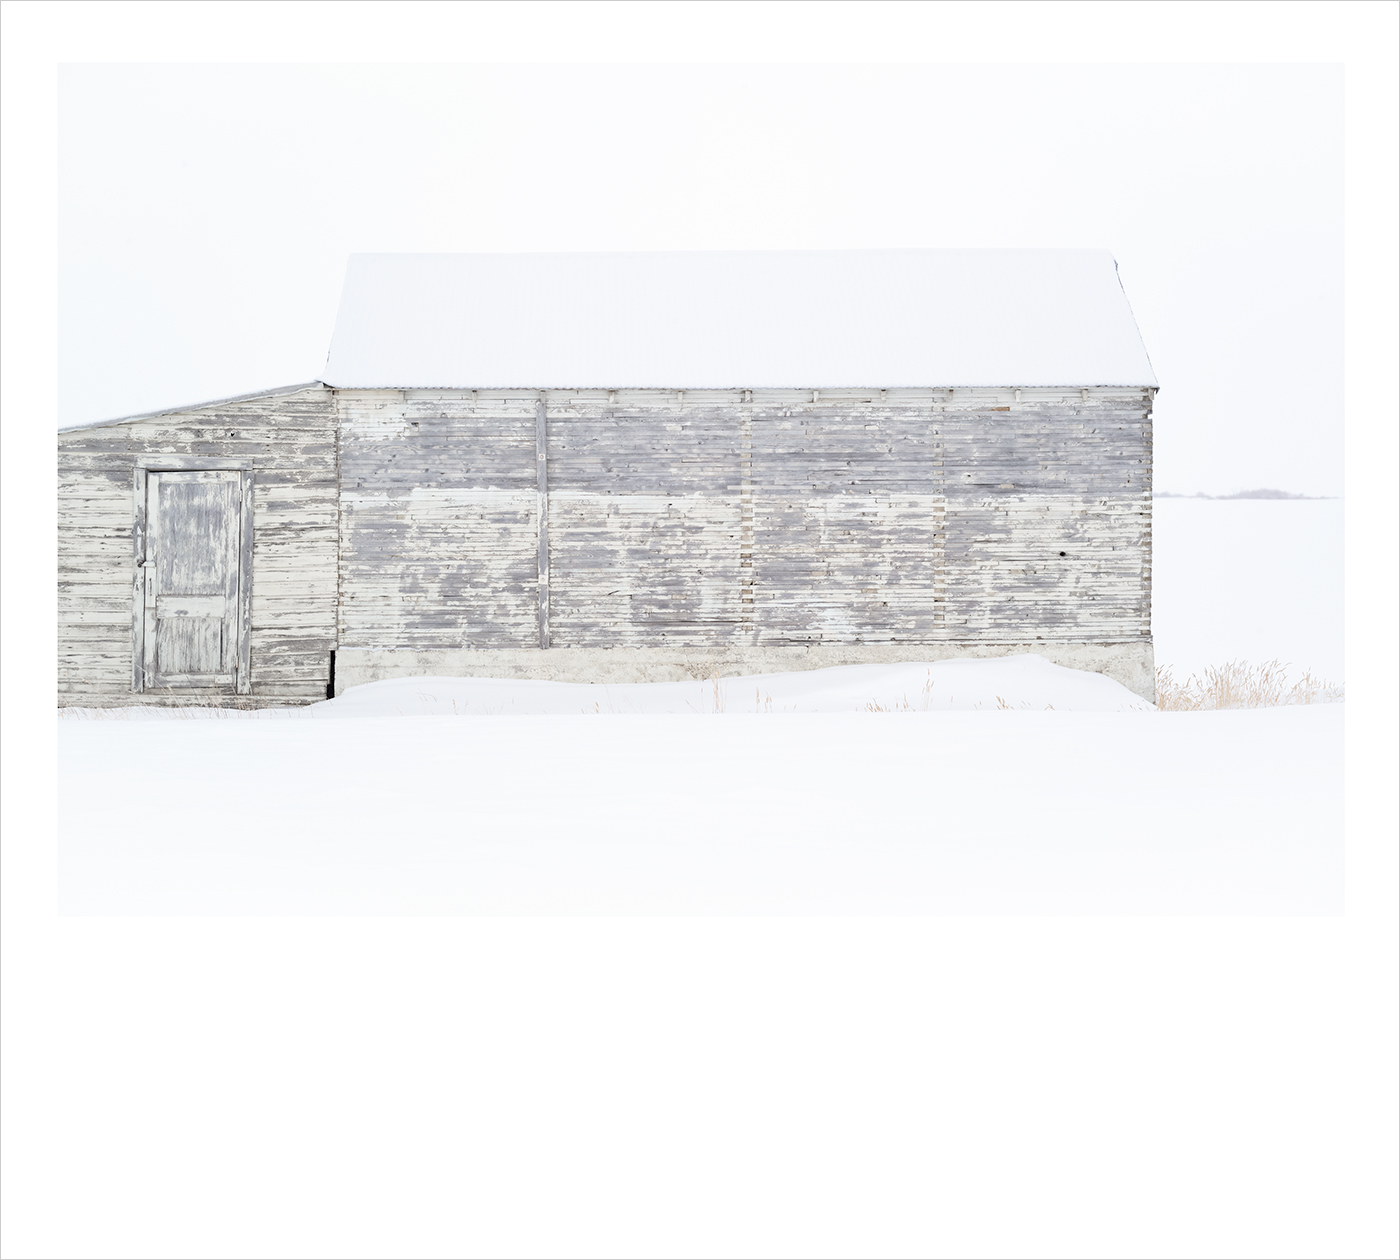 m_Polariod_White_Barn_III